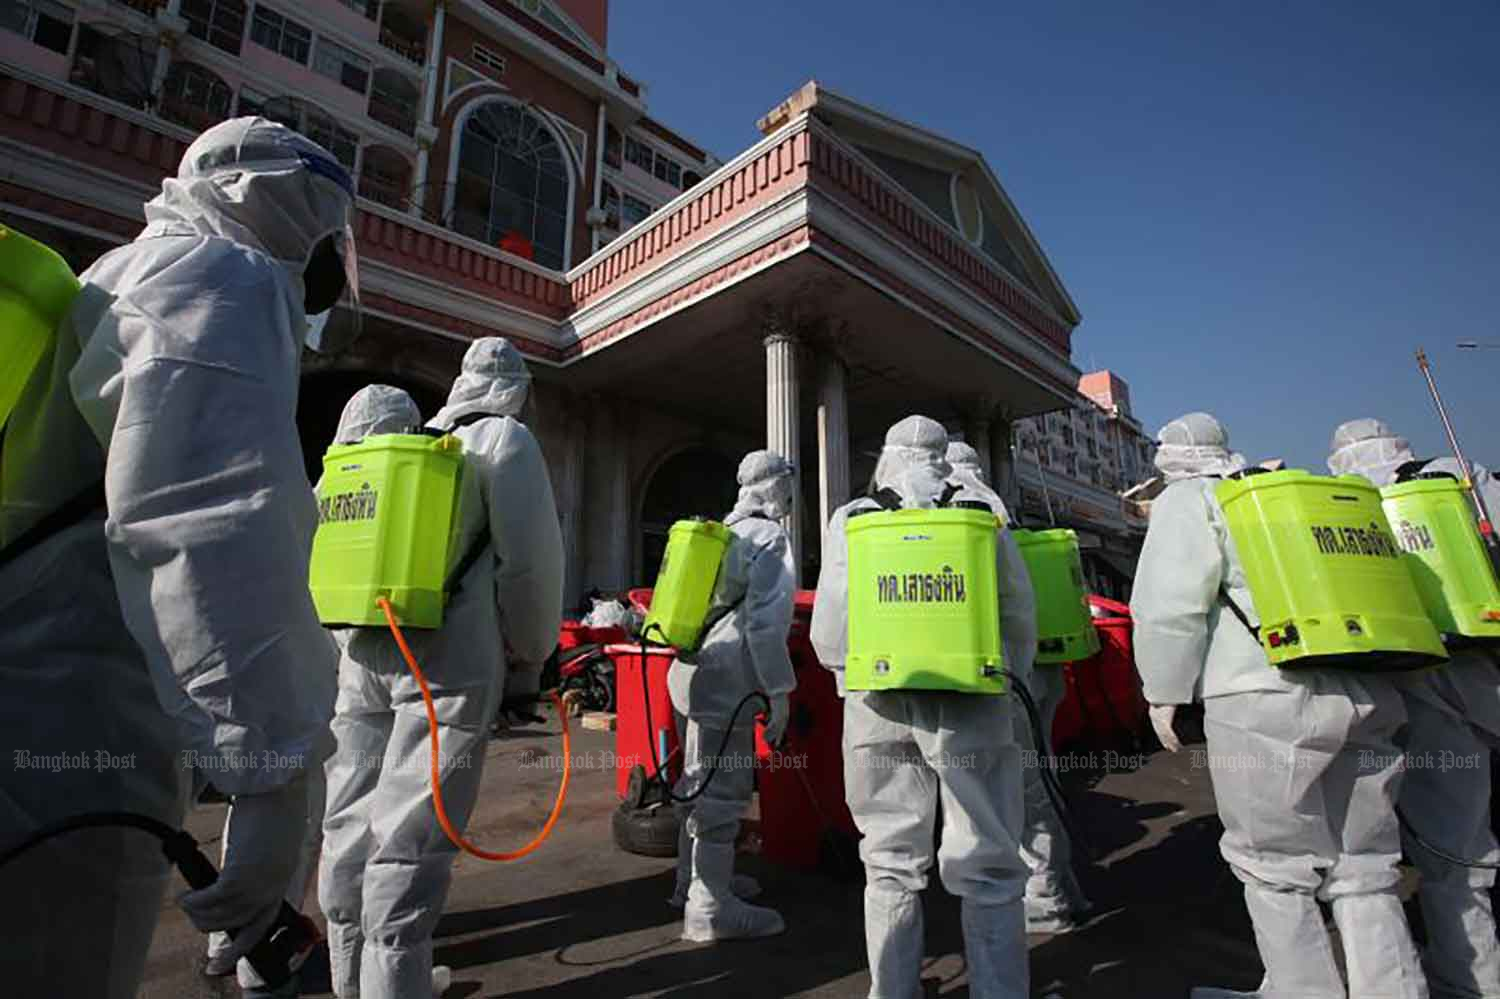 Disease control workers are about to spray disinfectant at a condominium building in Bang Yai district of Nonthaburi on Wednesday. (Photo by Pattarapong Chatpattarasill)